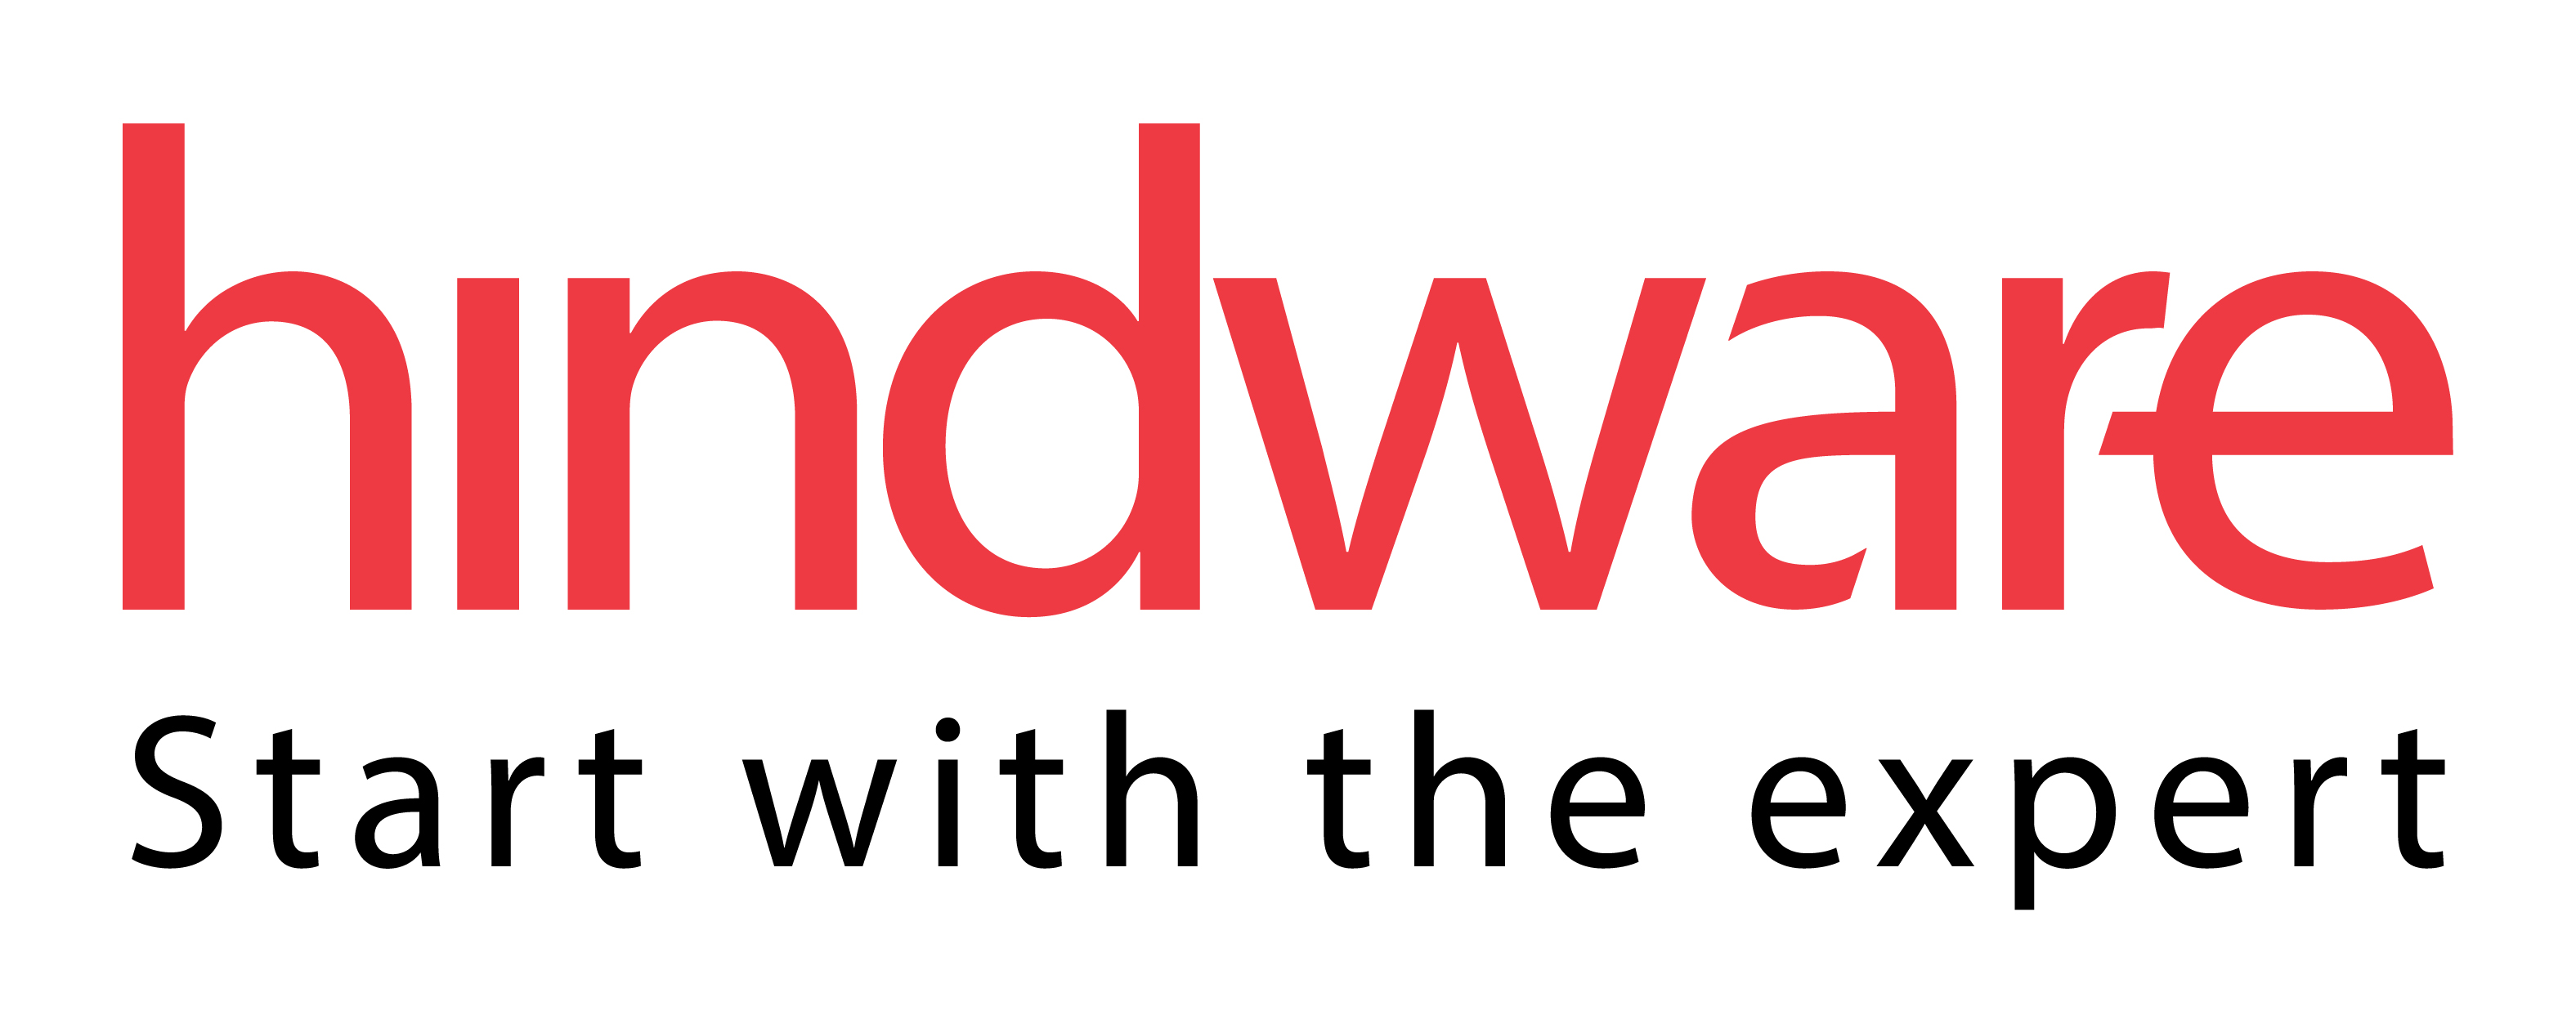 www.hindwarehomes.com